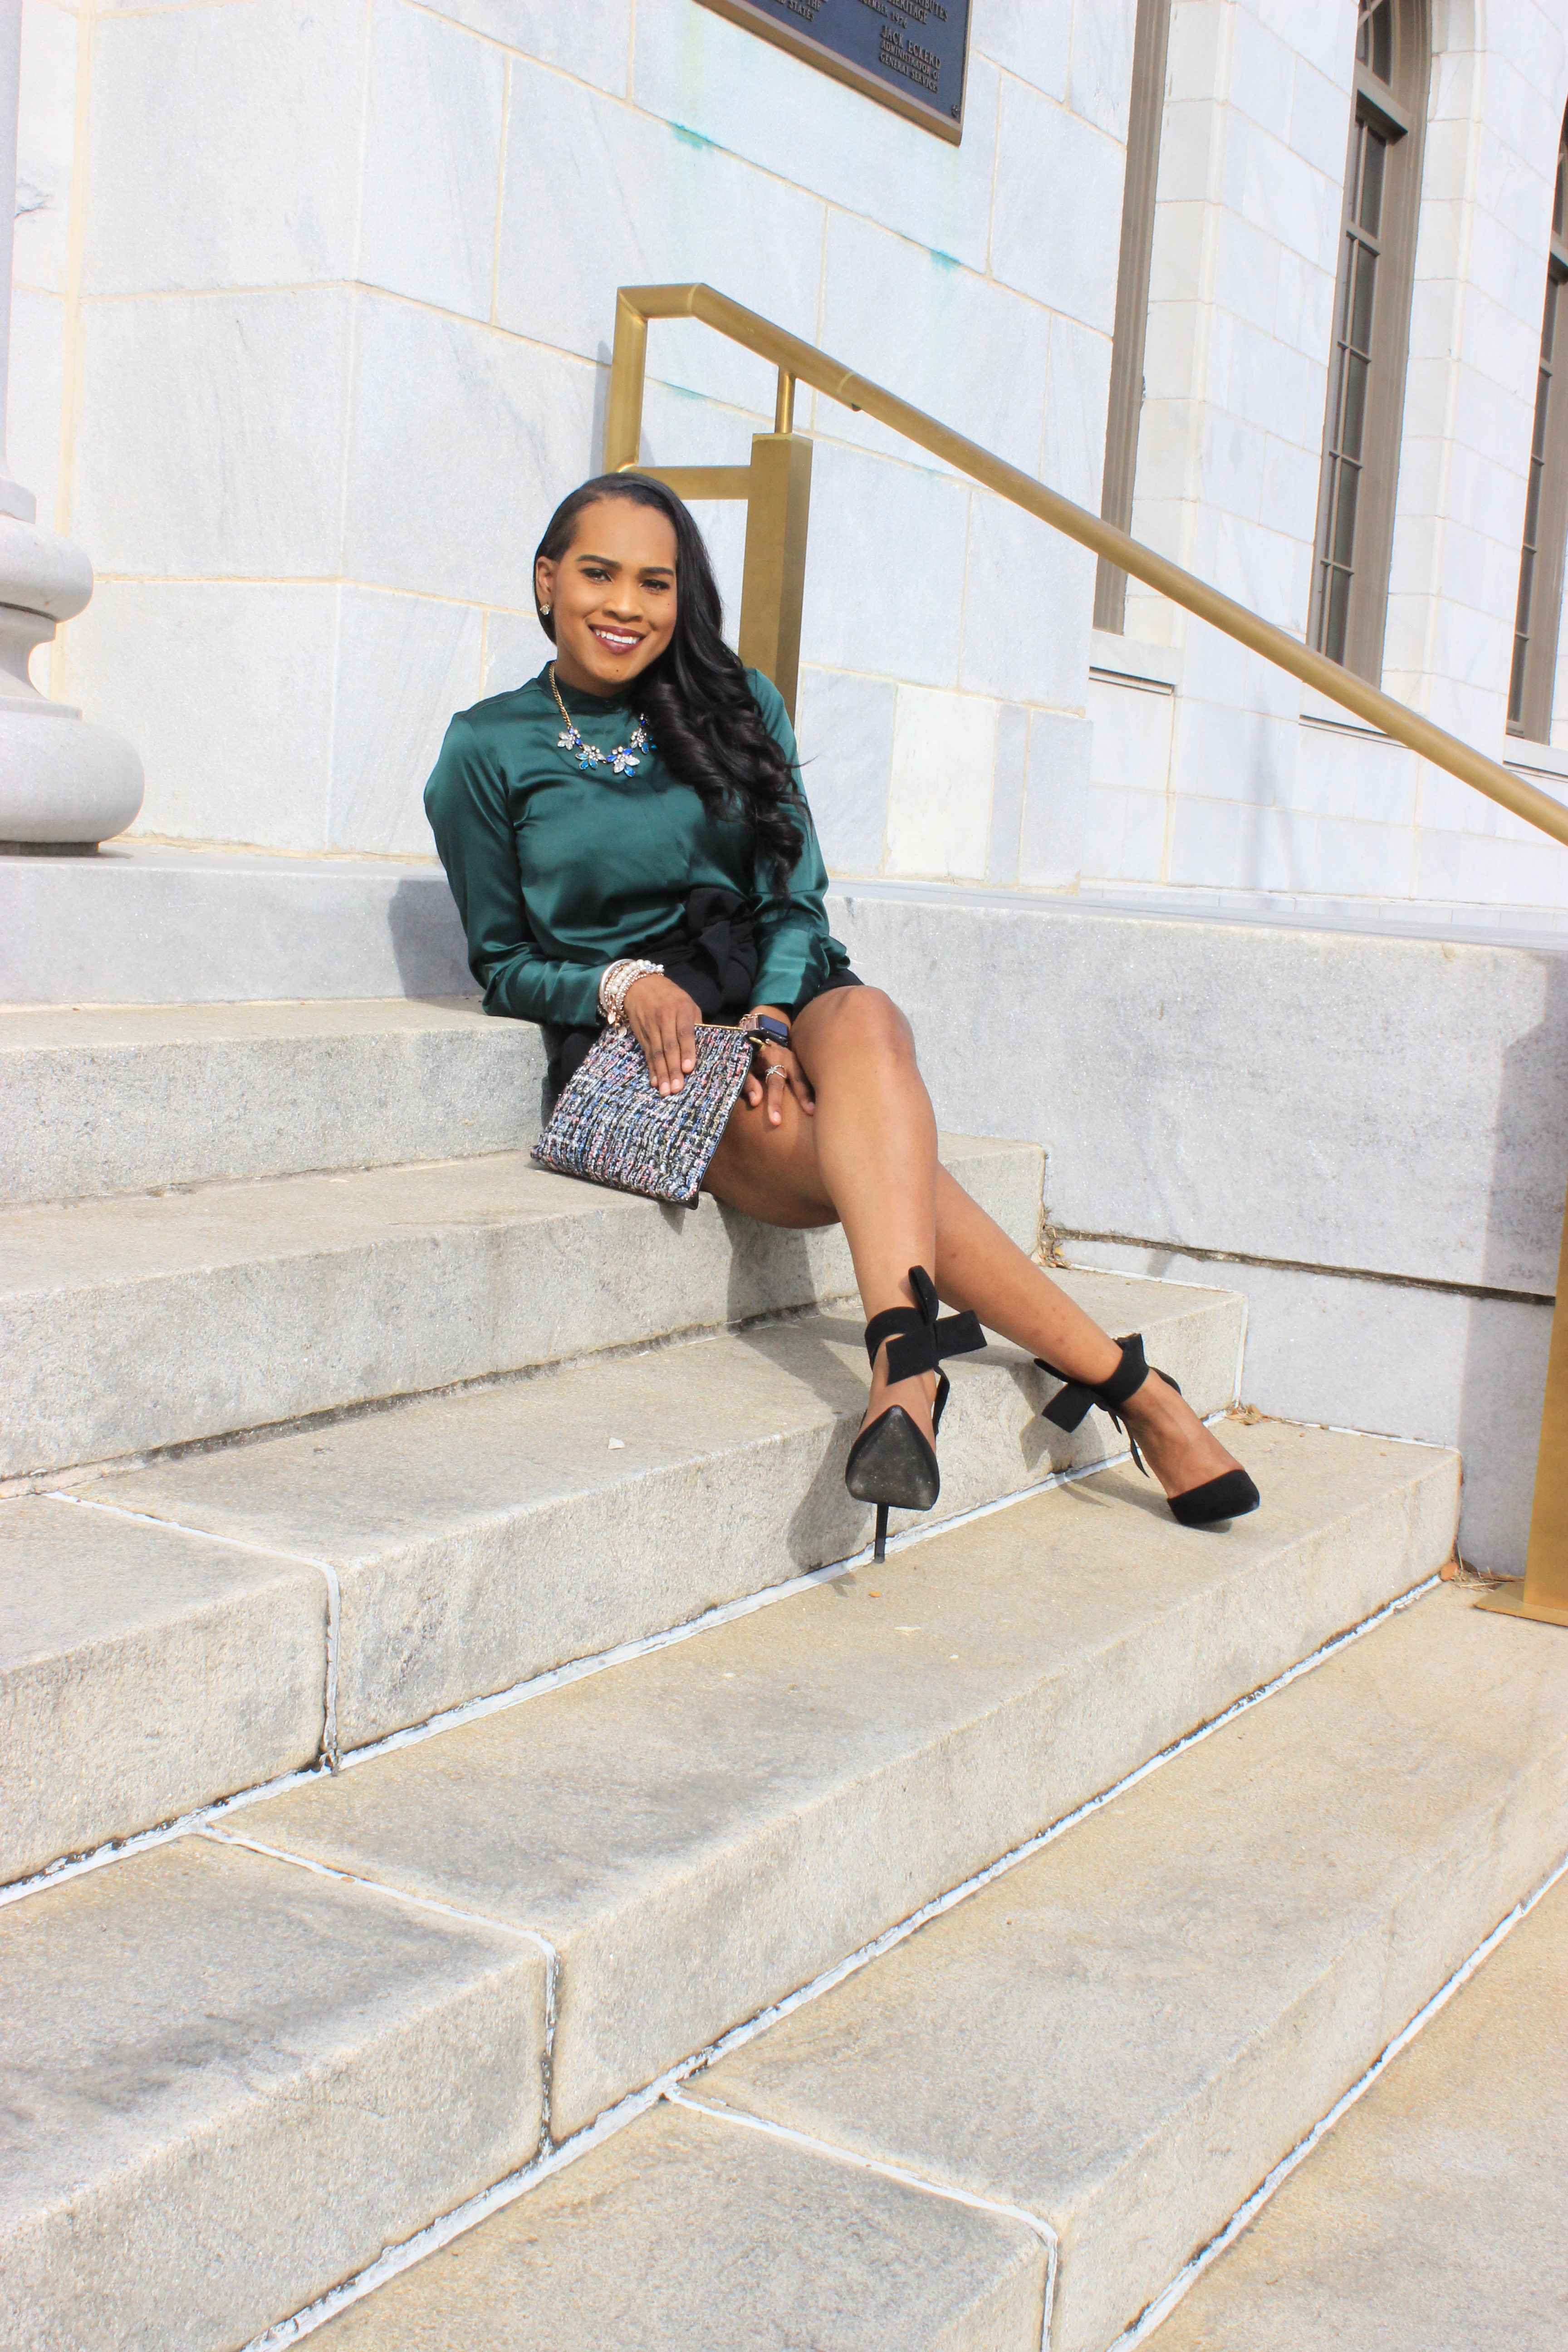 Style-Files-HM-Dark-Green-Satin-button-front-blouse-black-hm-tie-front-shorts-justfab-black-Giada-bow-heels- Gianni-Bini-Lizzy-Notch-Lapel-Collar- with-feather-hem-christmas-style-inspiration-what-to-wear-duirng-the-holidays-oohlalablog-13